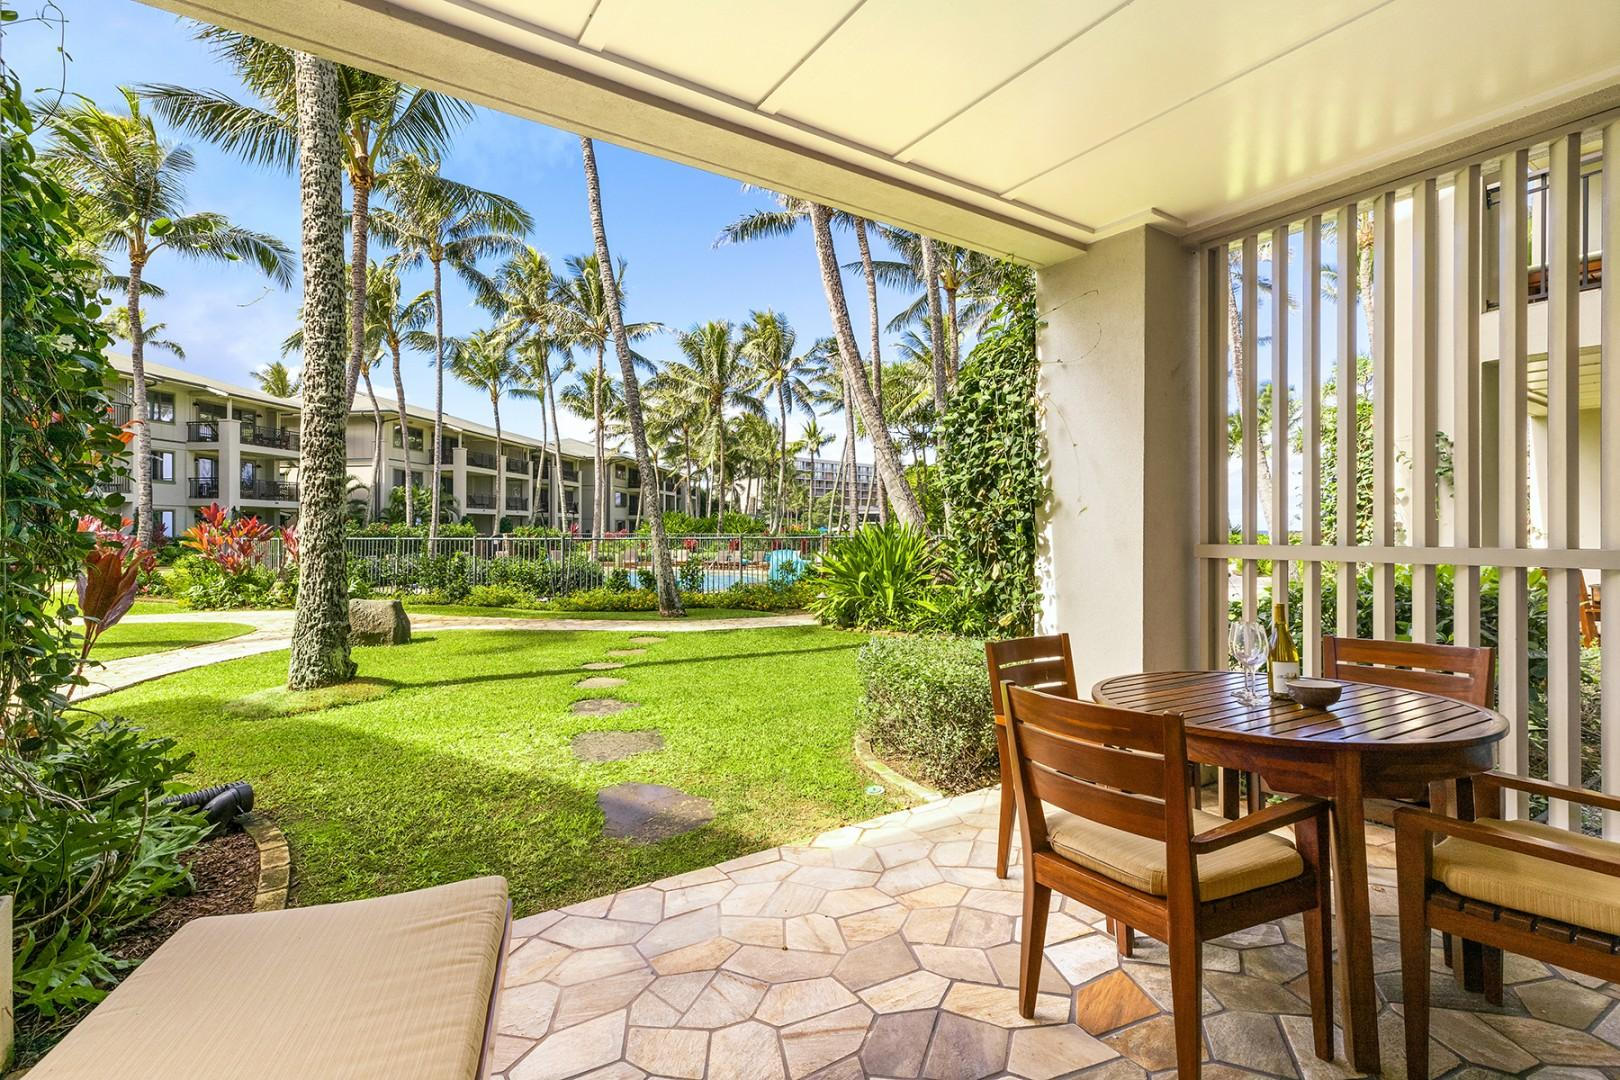 Lanai - just steps from the pool & jacuzzi